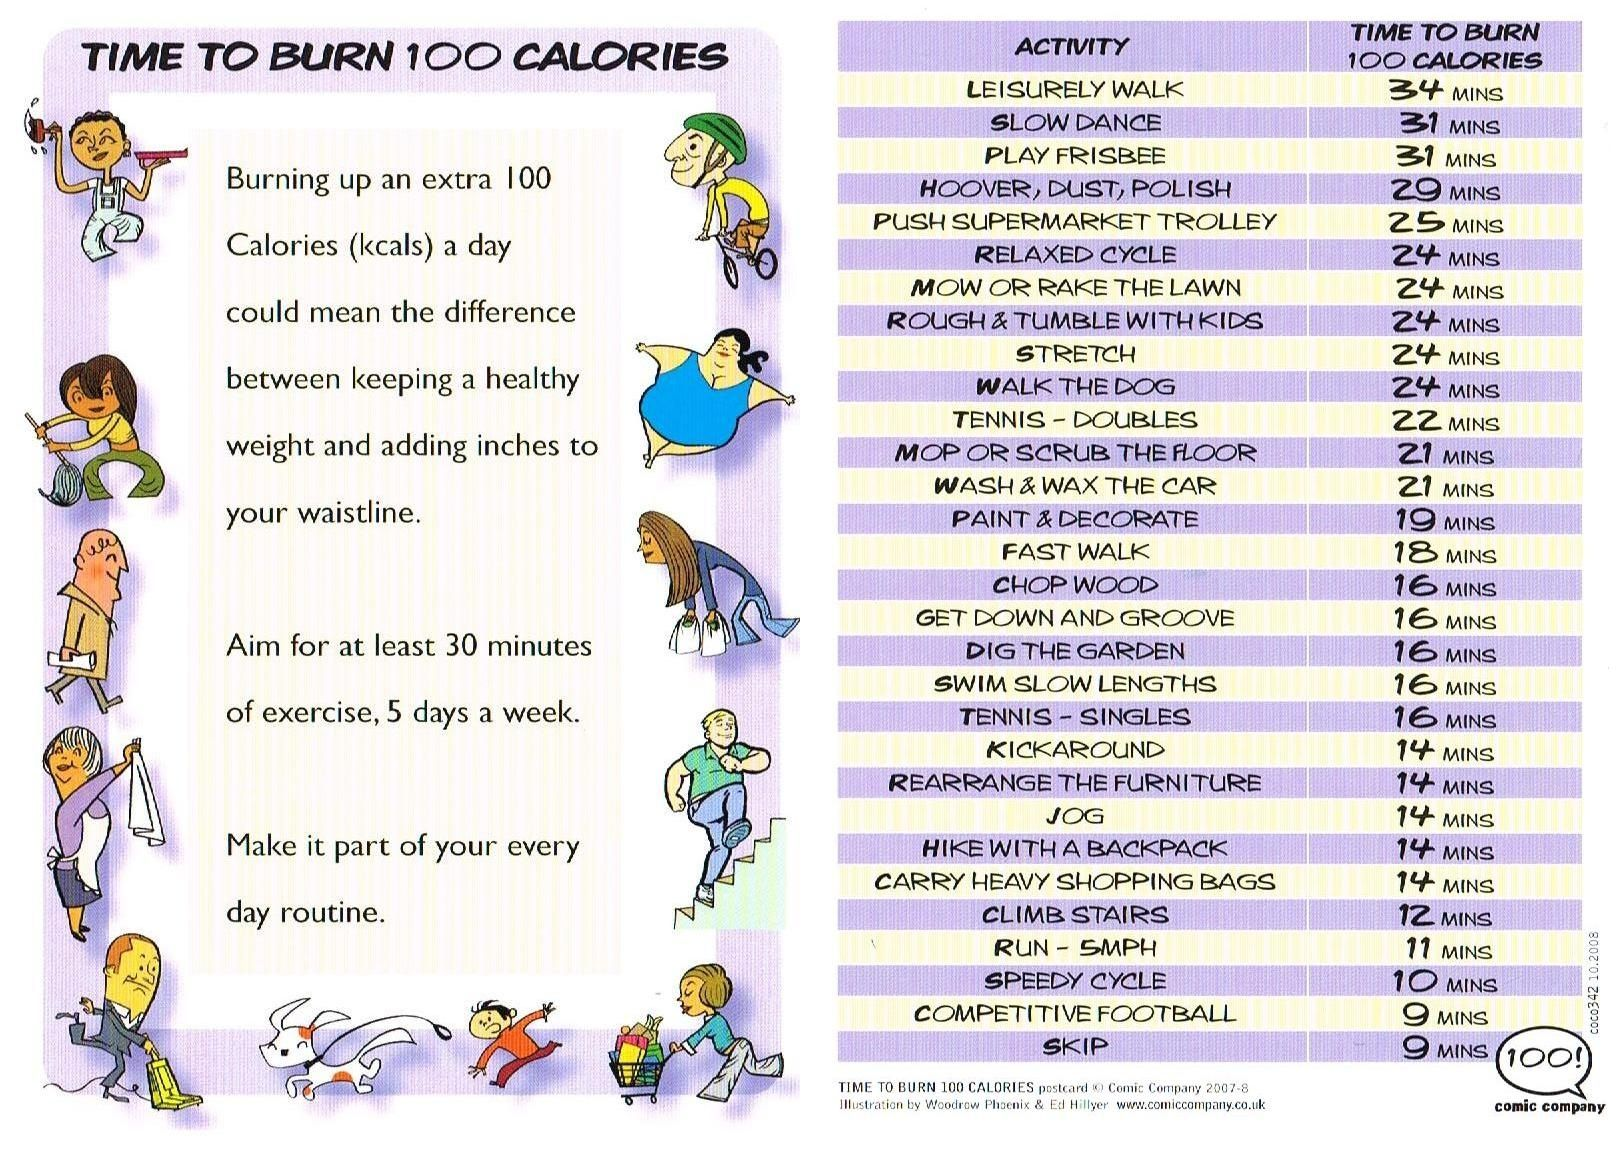 What do you need to do and for how long to burn 100 calories weight loss nvjuhfo Image collections